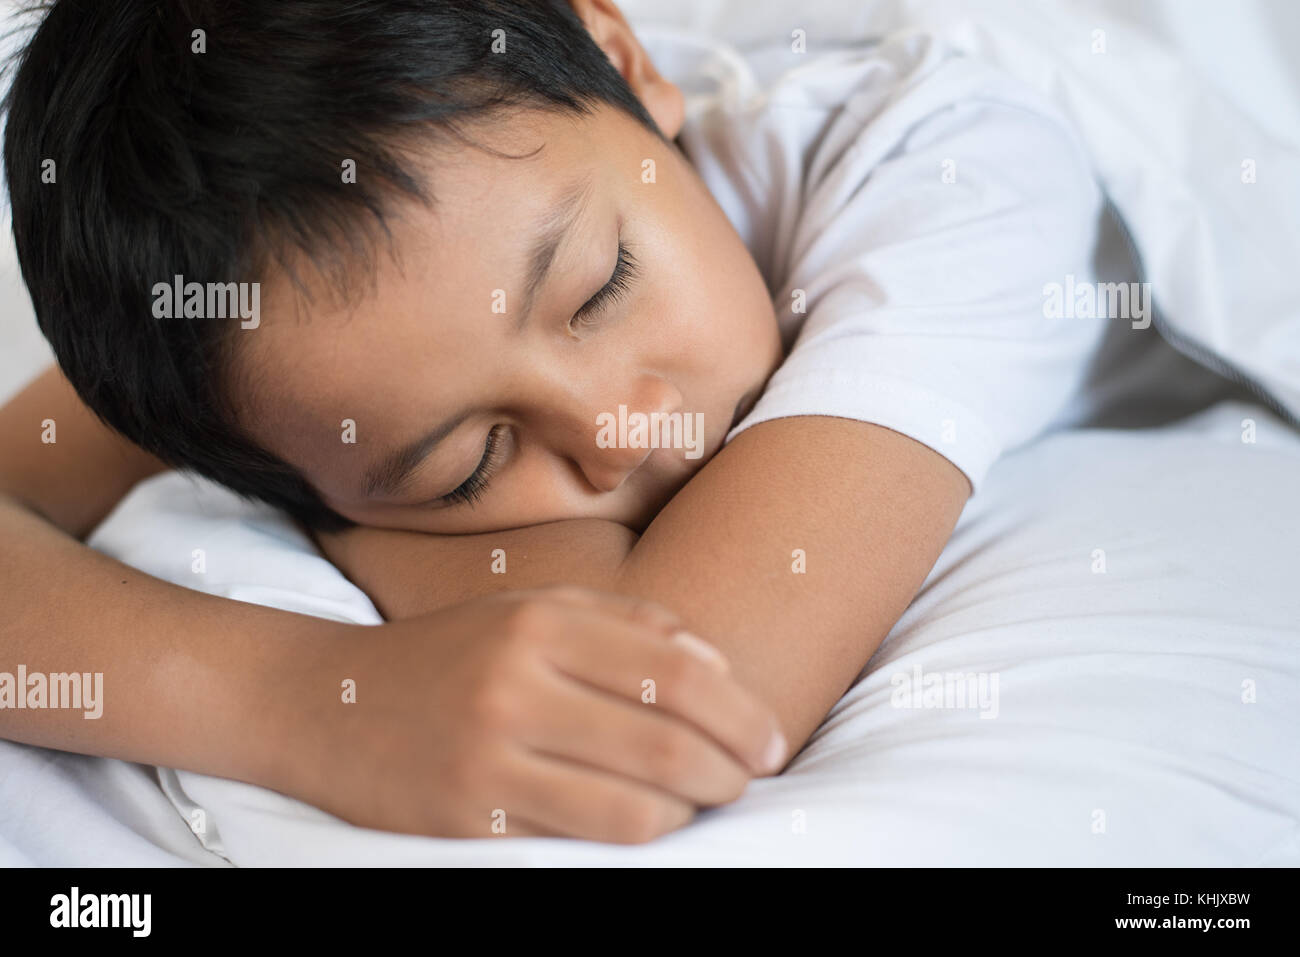 boy sleeping on bed with white sheet and pillow.asian kid fall asleep daydreaming.sleep concept - Stock Image